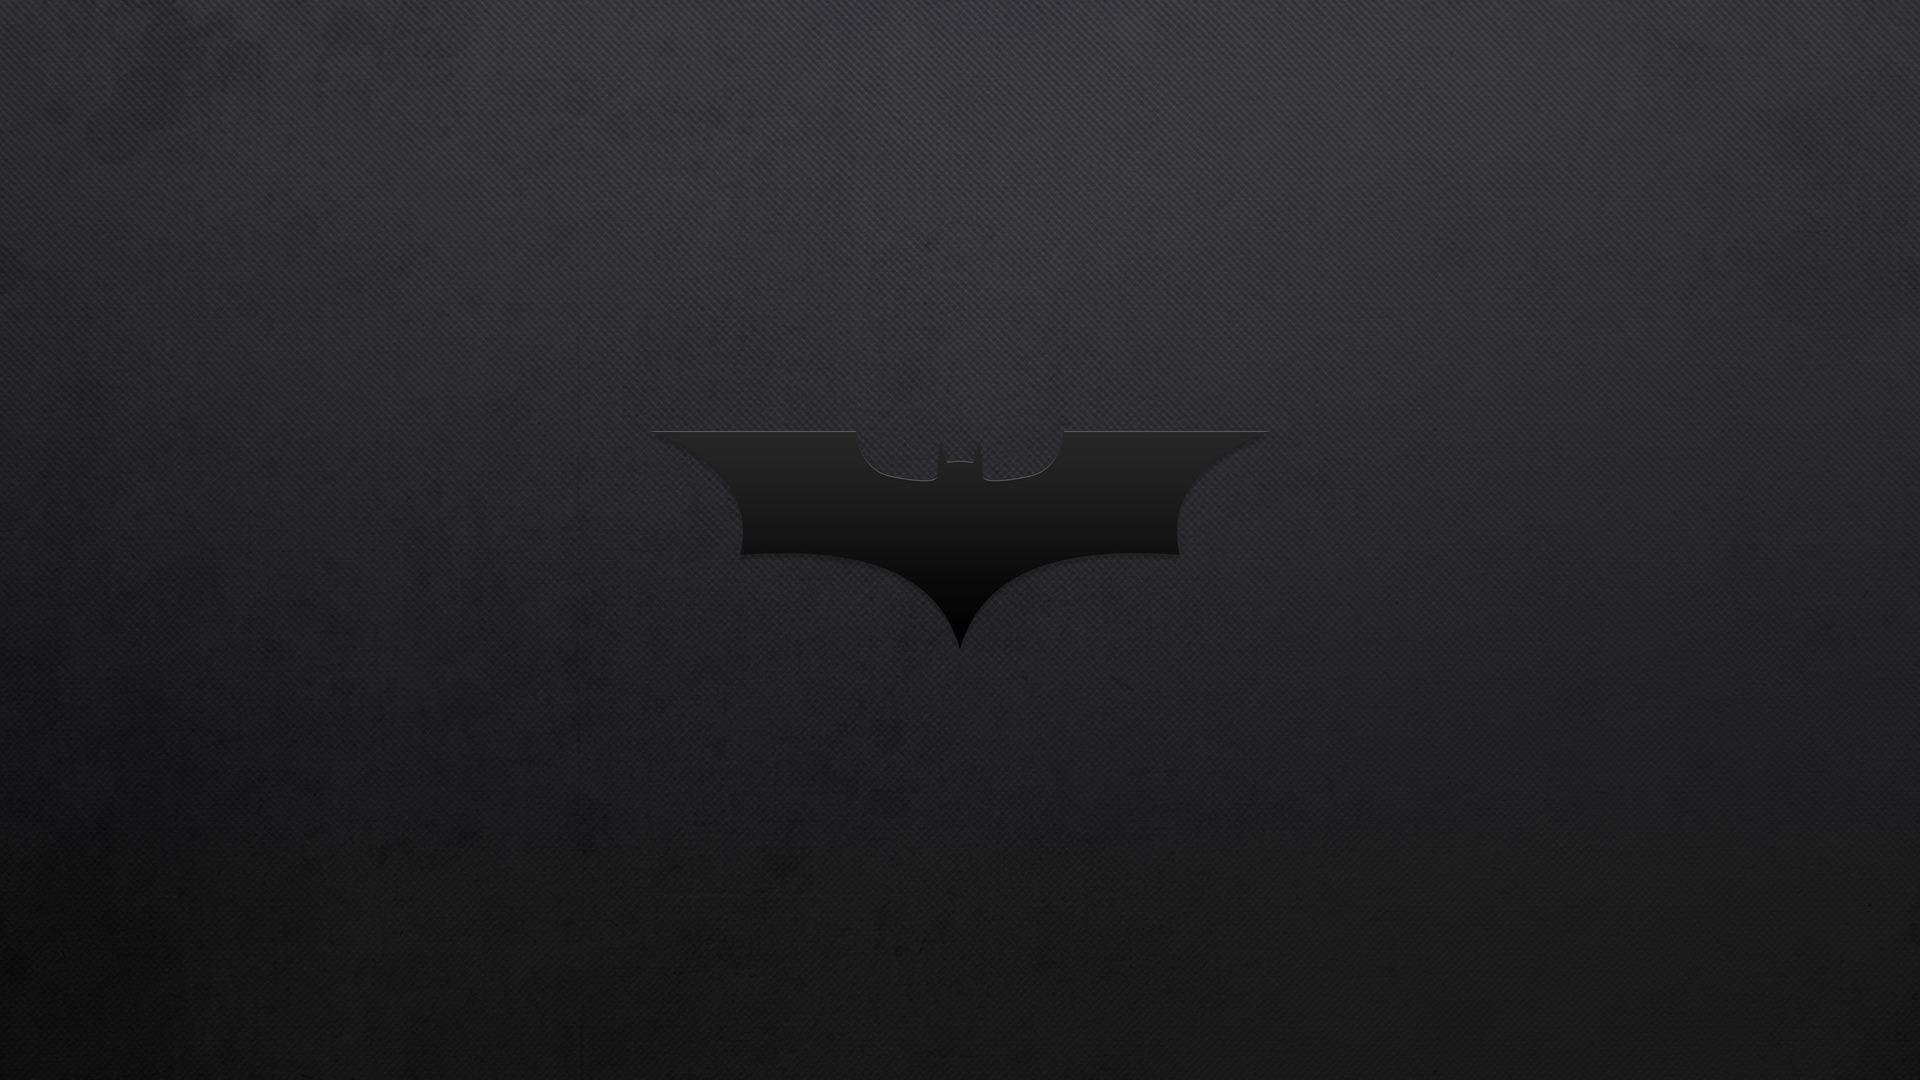 50 Batman Logo wallpapers For Free Download (HD 1080p)